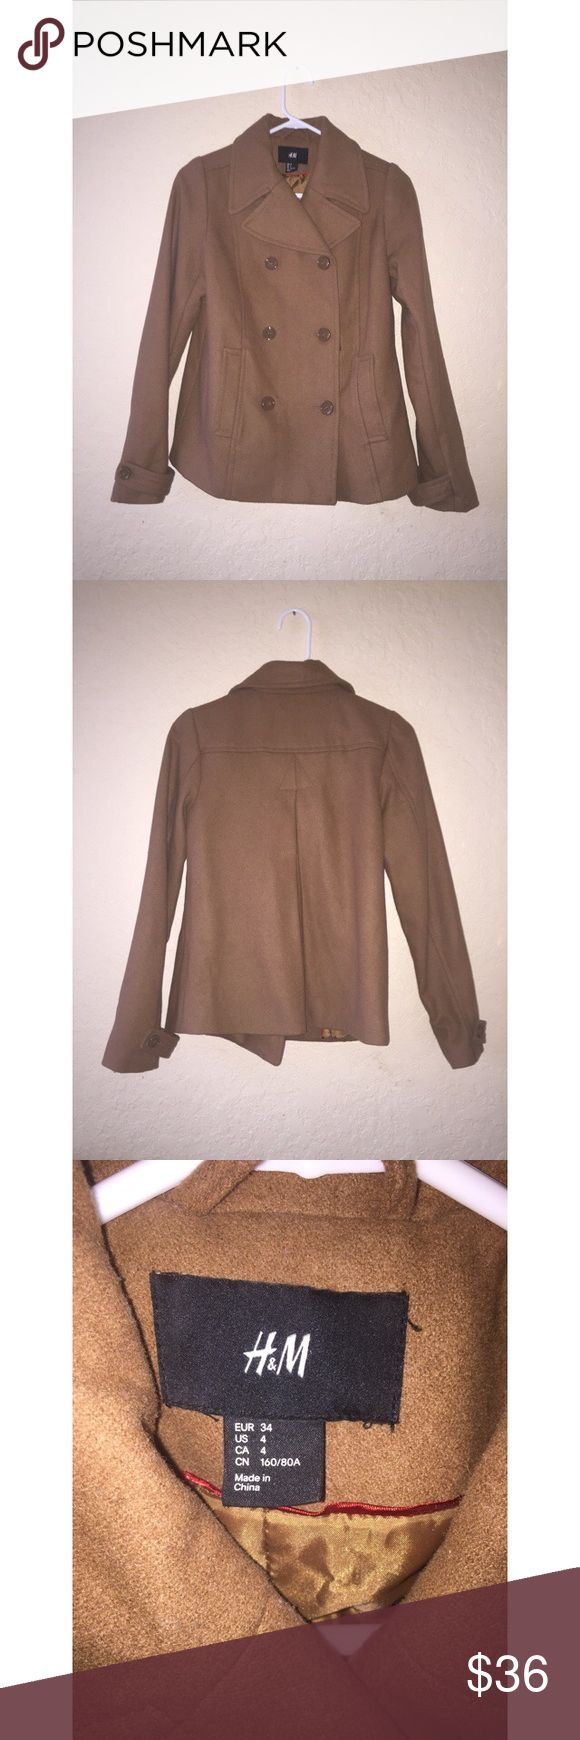 H&M brown coat Great condition H&M Jackets & Coats